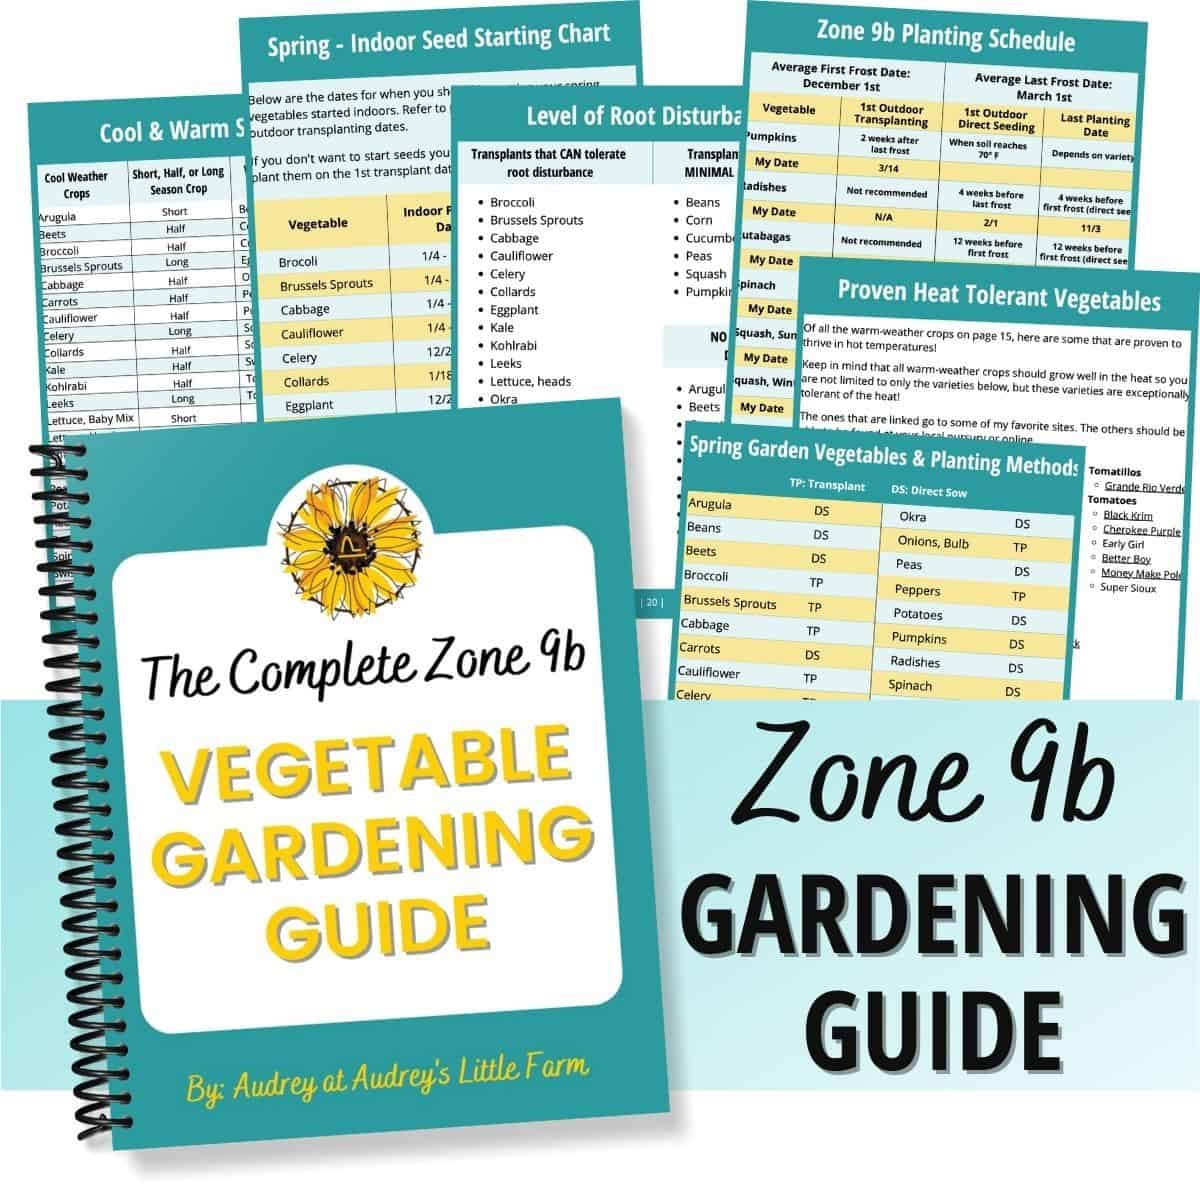 A Product Display of My Zone 9b Vegetable Gardening Guide